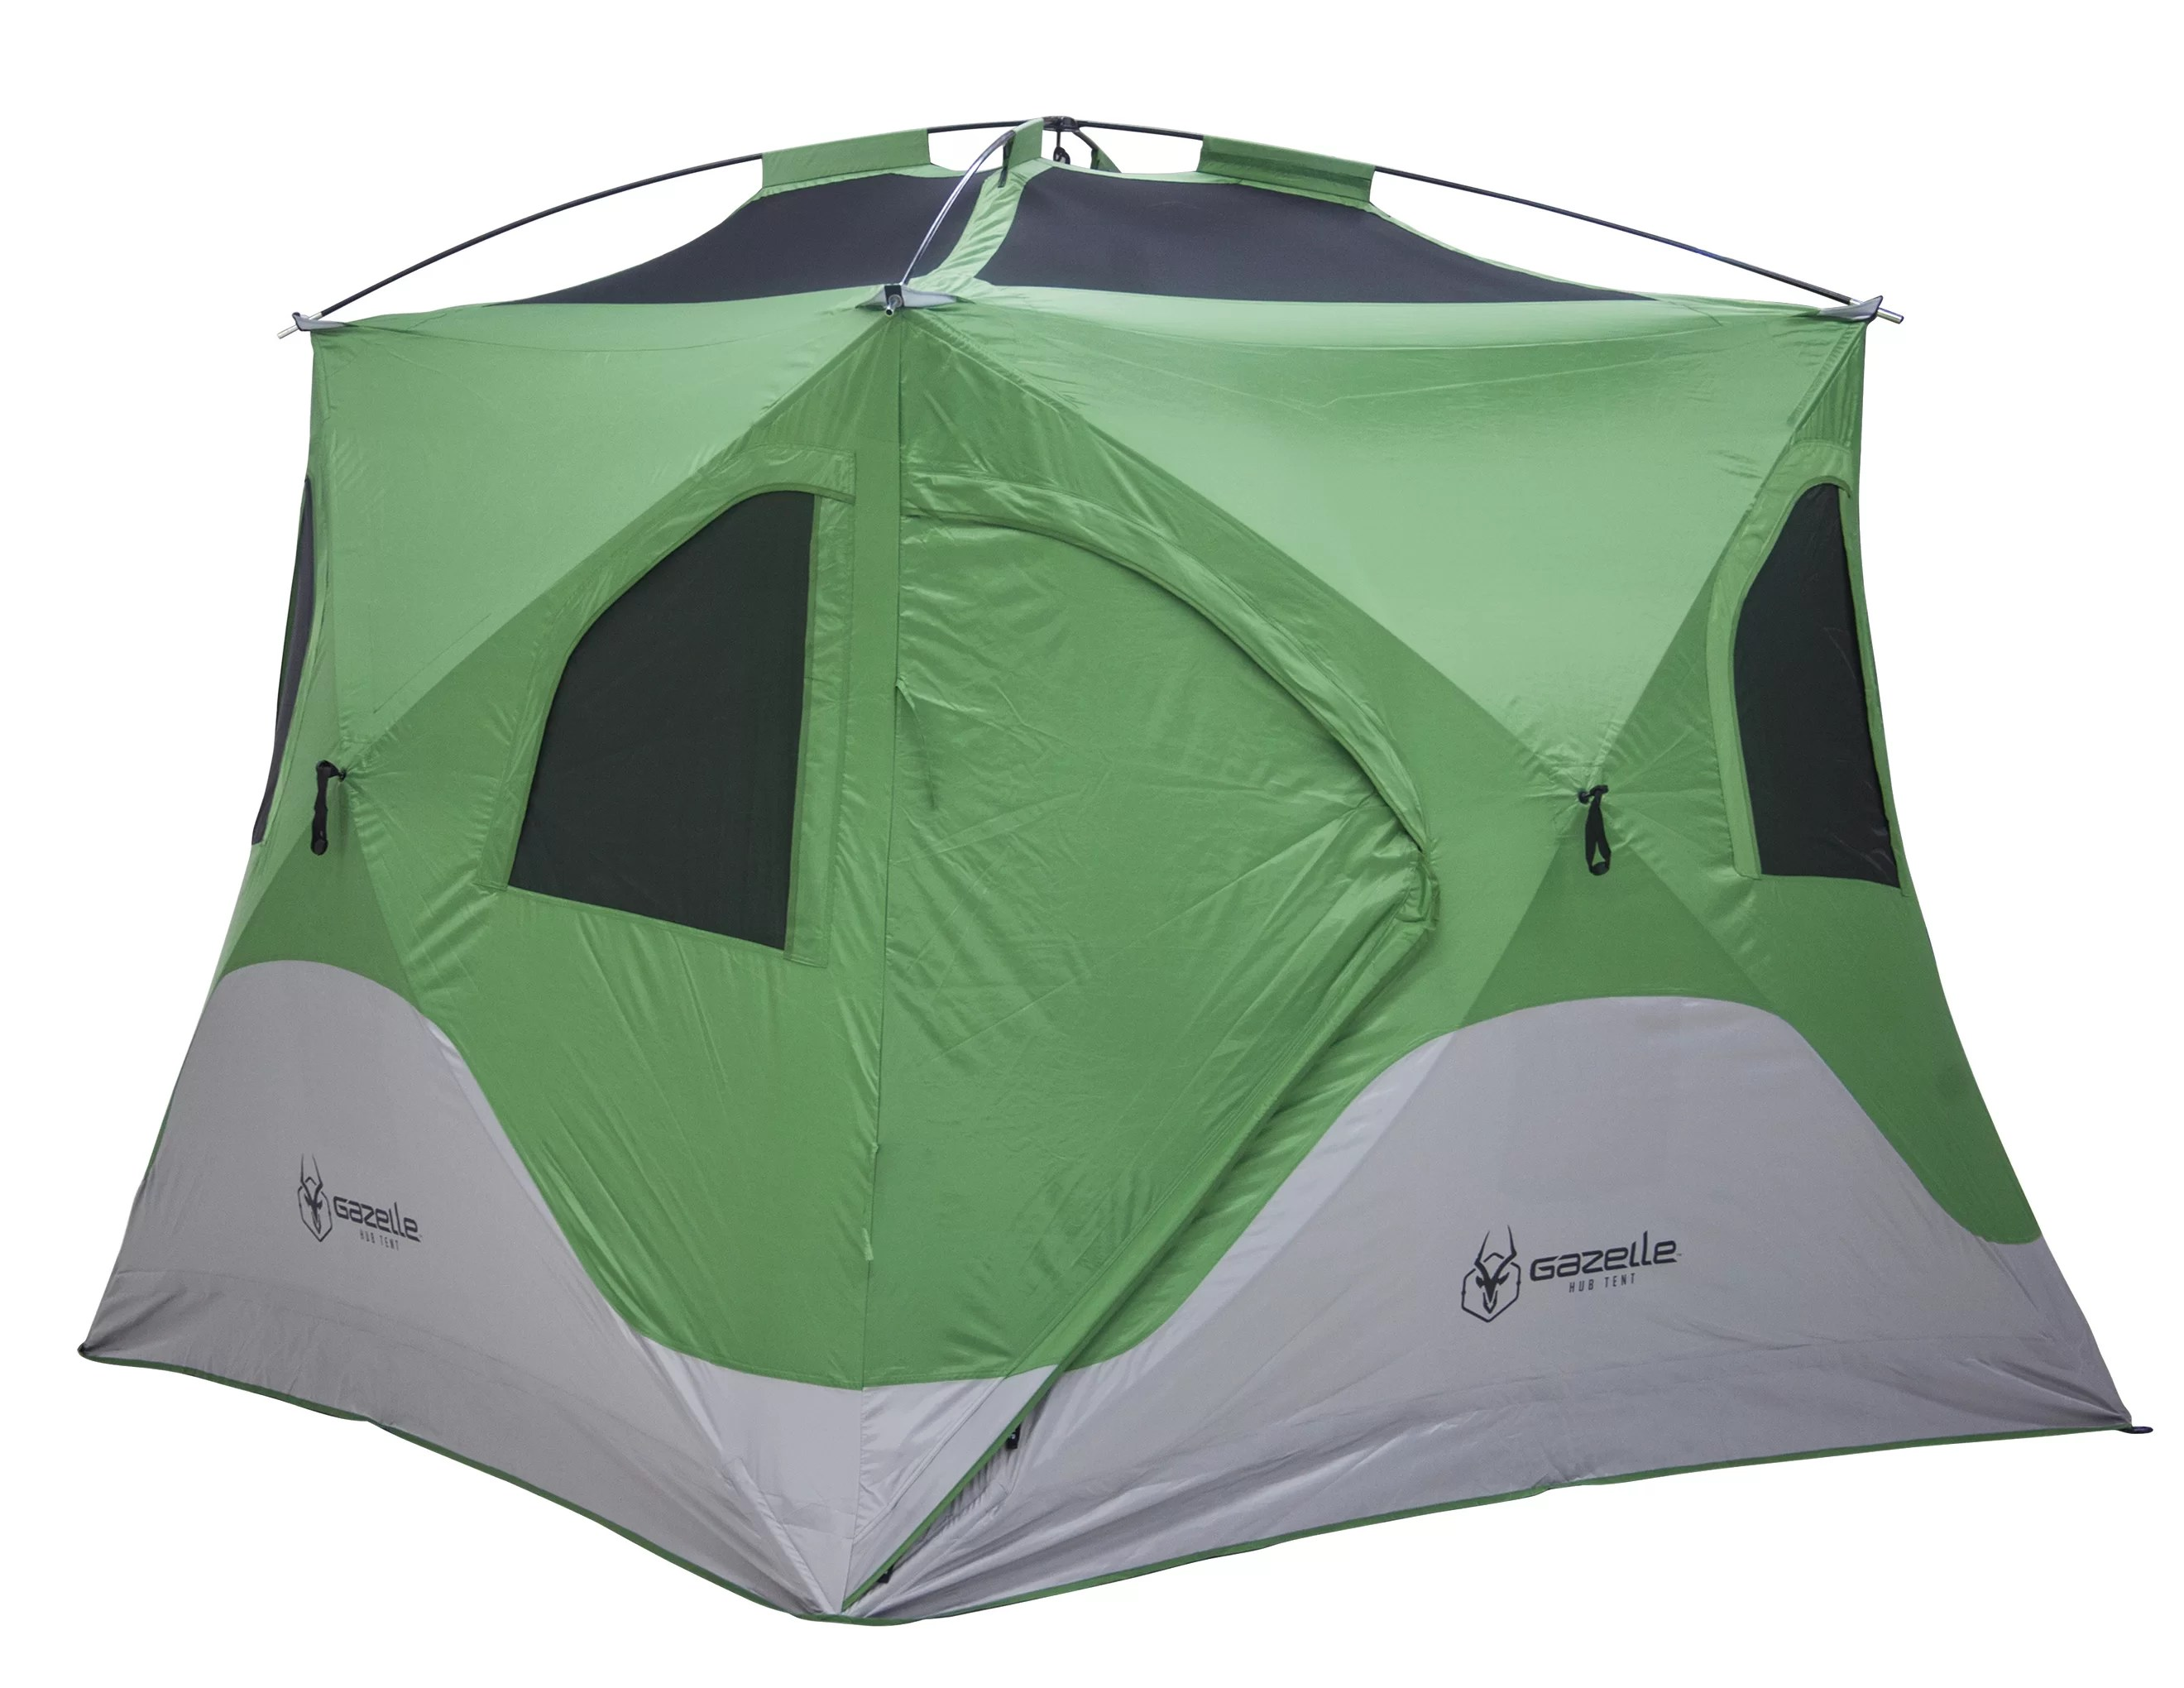 4 Camping Pop Up Portable Camping Hub 4 Person Tent